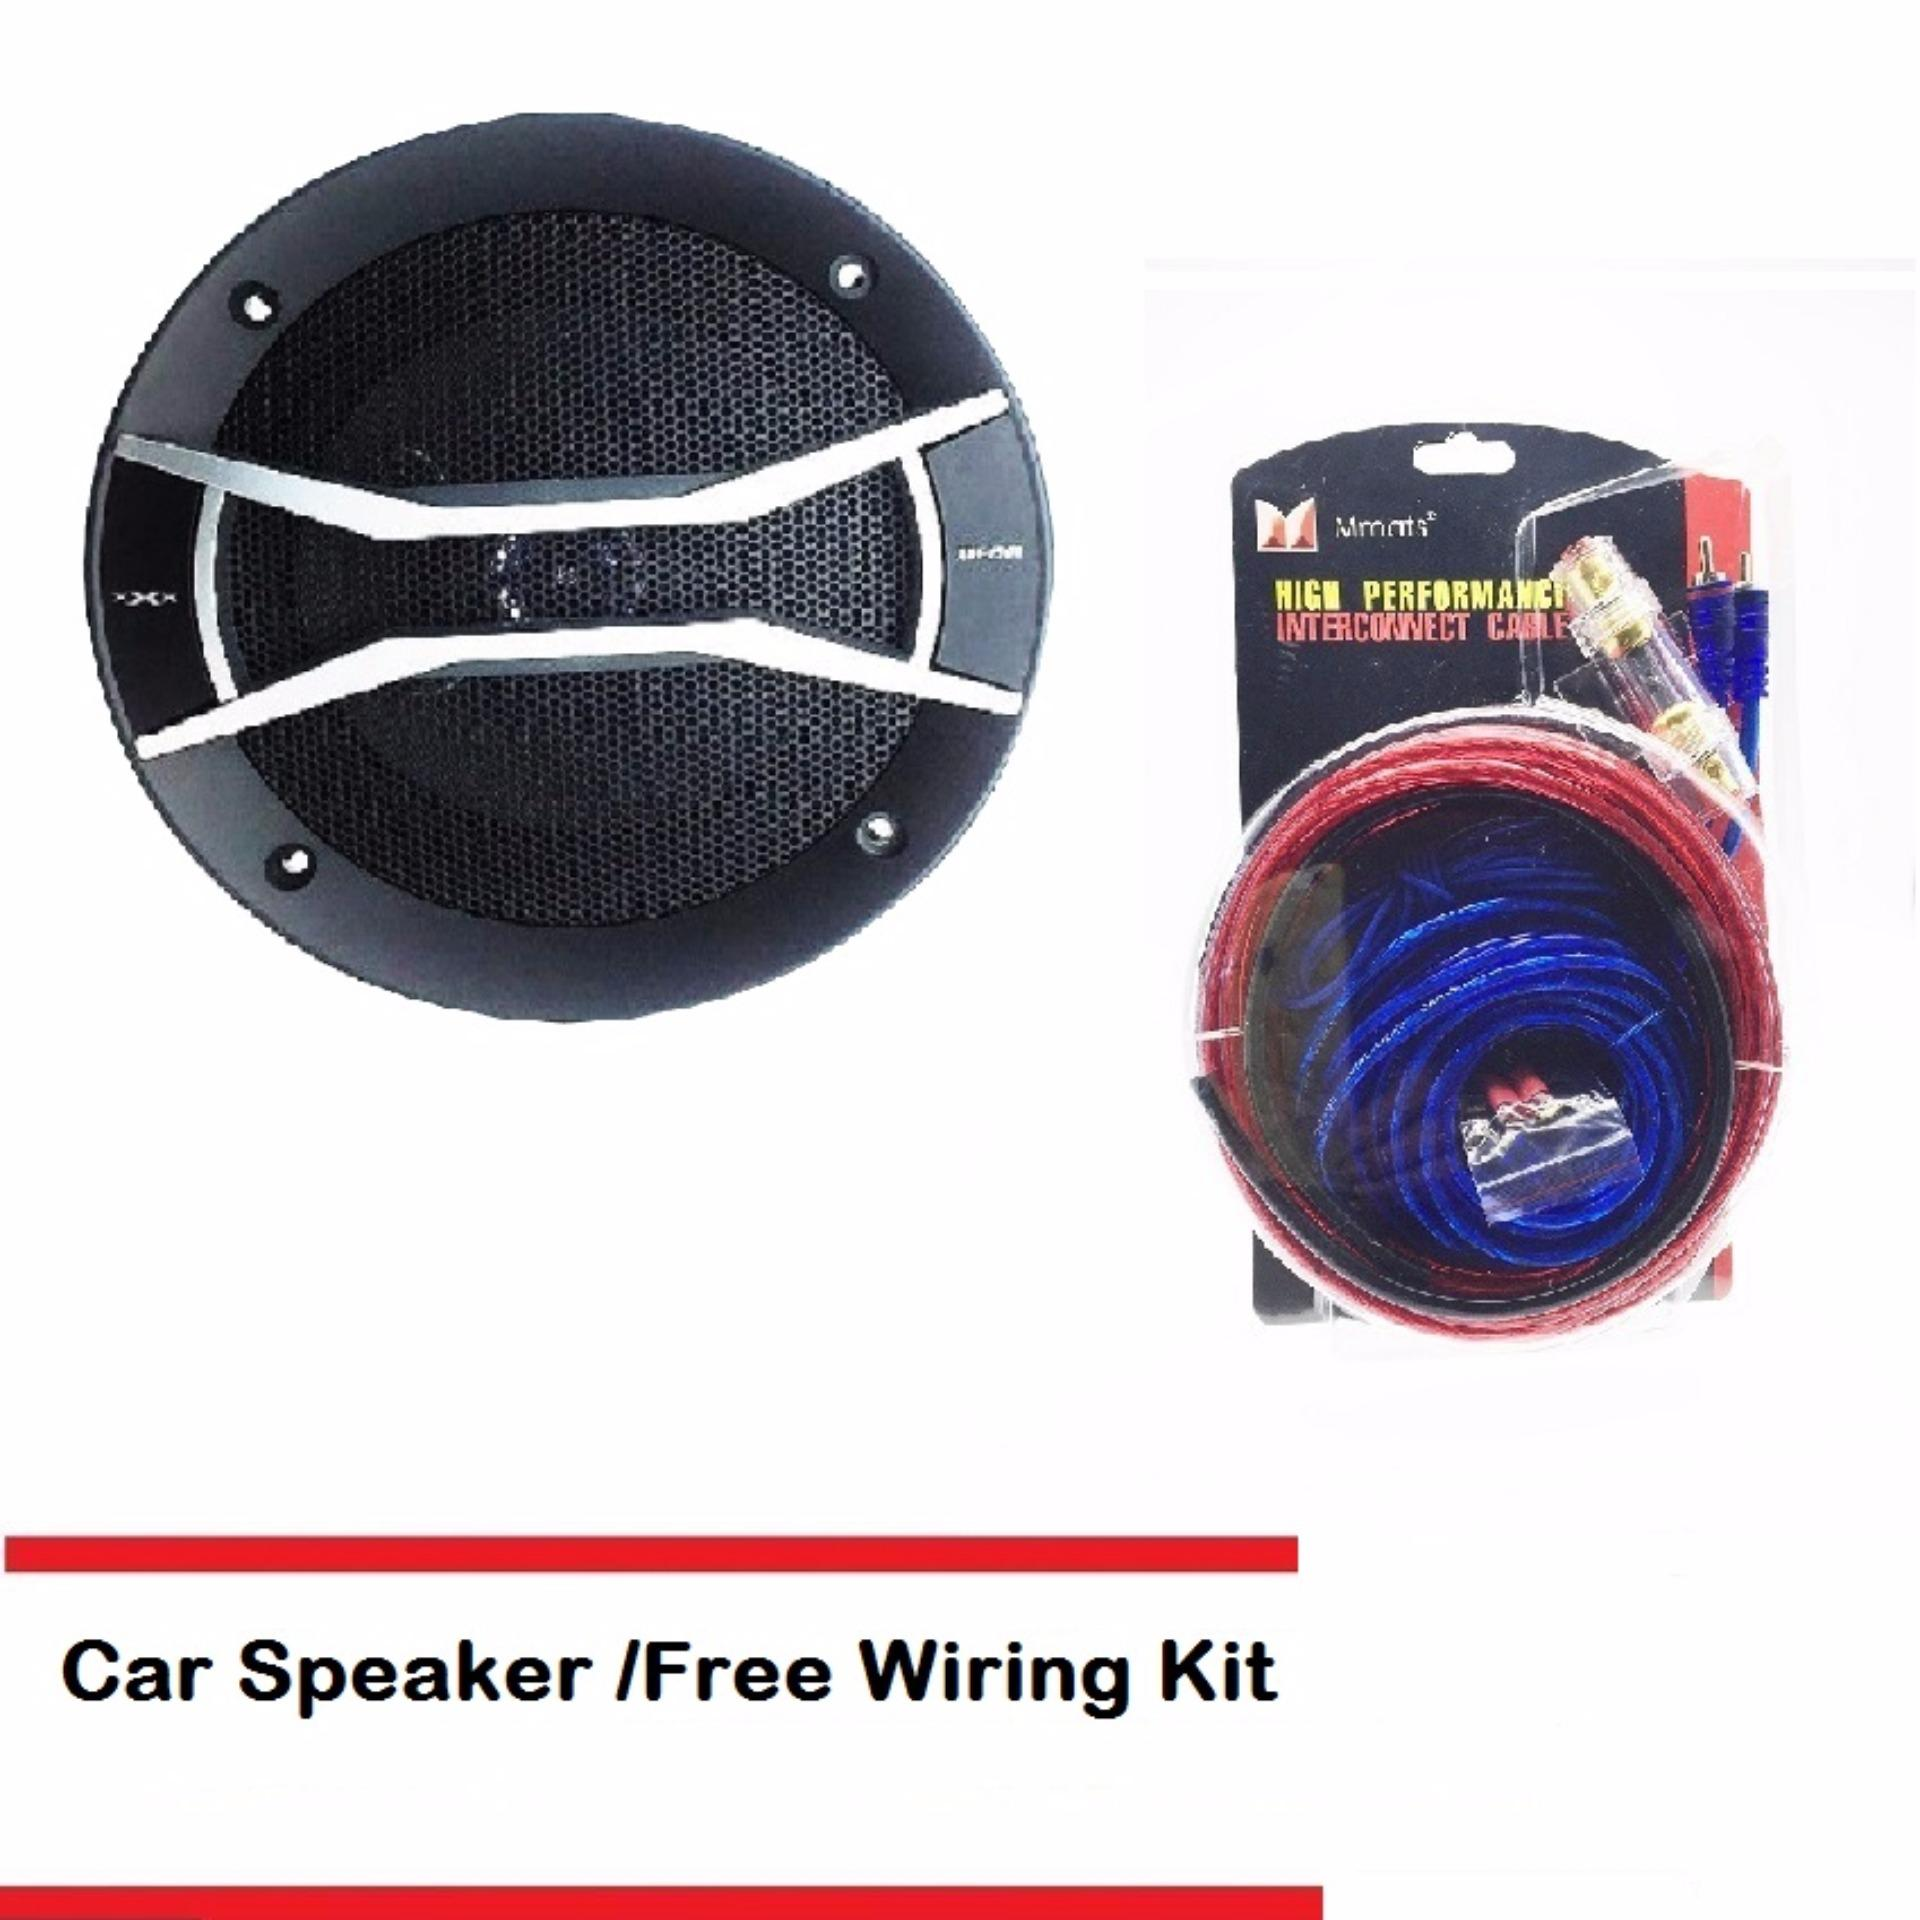 Great Car Speaker Wire Kit Pictures Audio Wiring Pyle Plam40 4gauge Amplifier Installation Walmartcom Image Collection Philippines X12 Xgt 1502 5 1 4 2 Way With Free